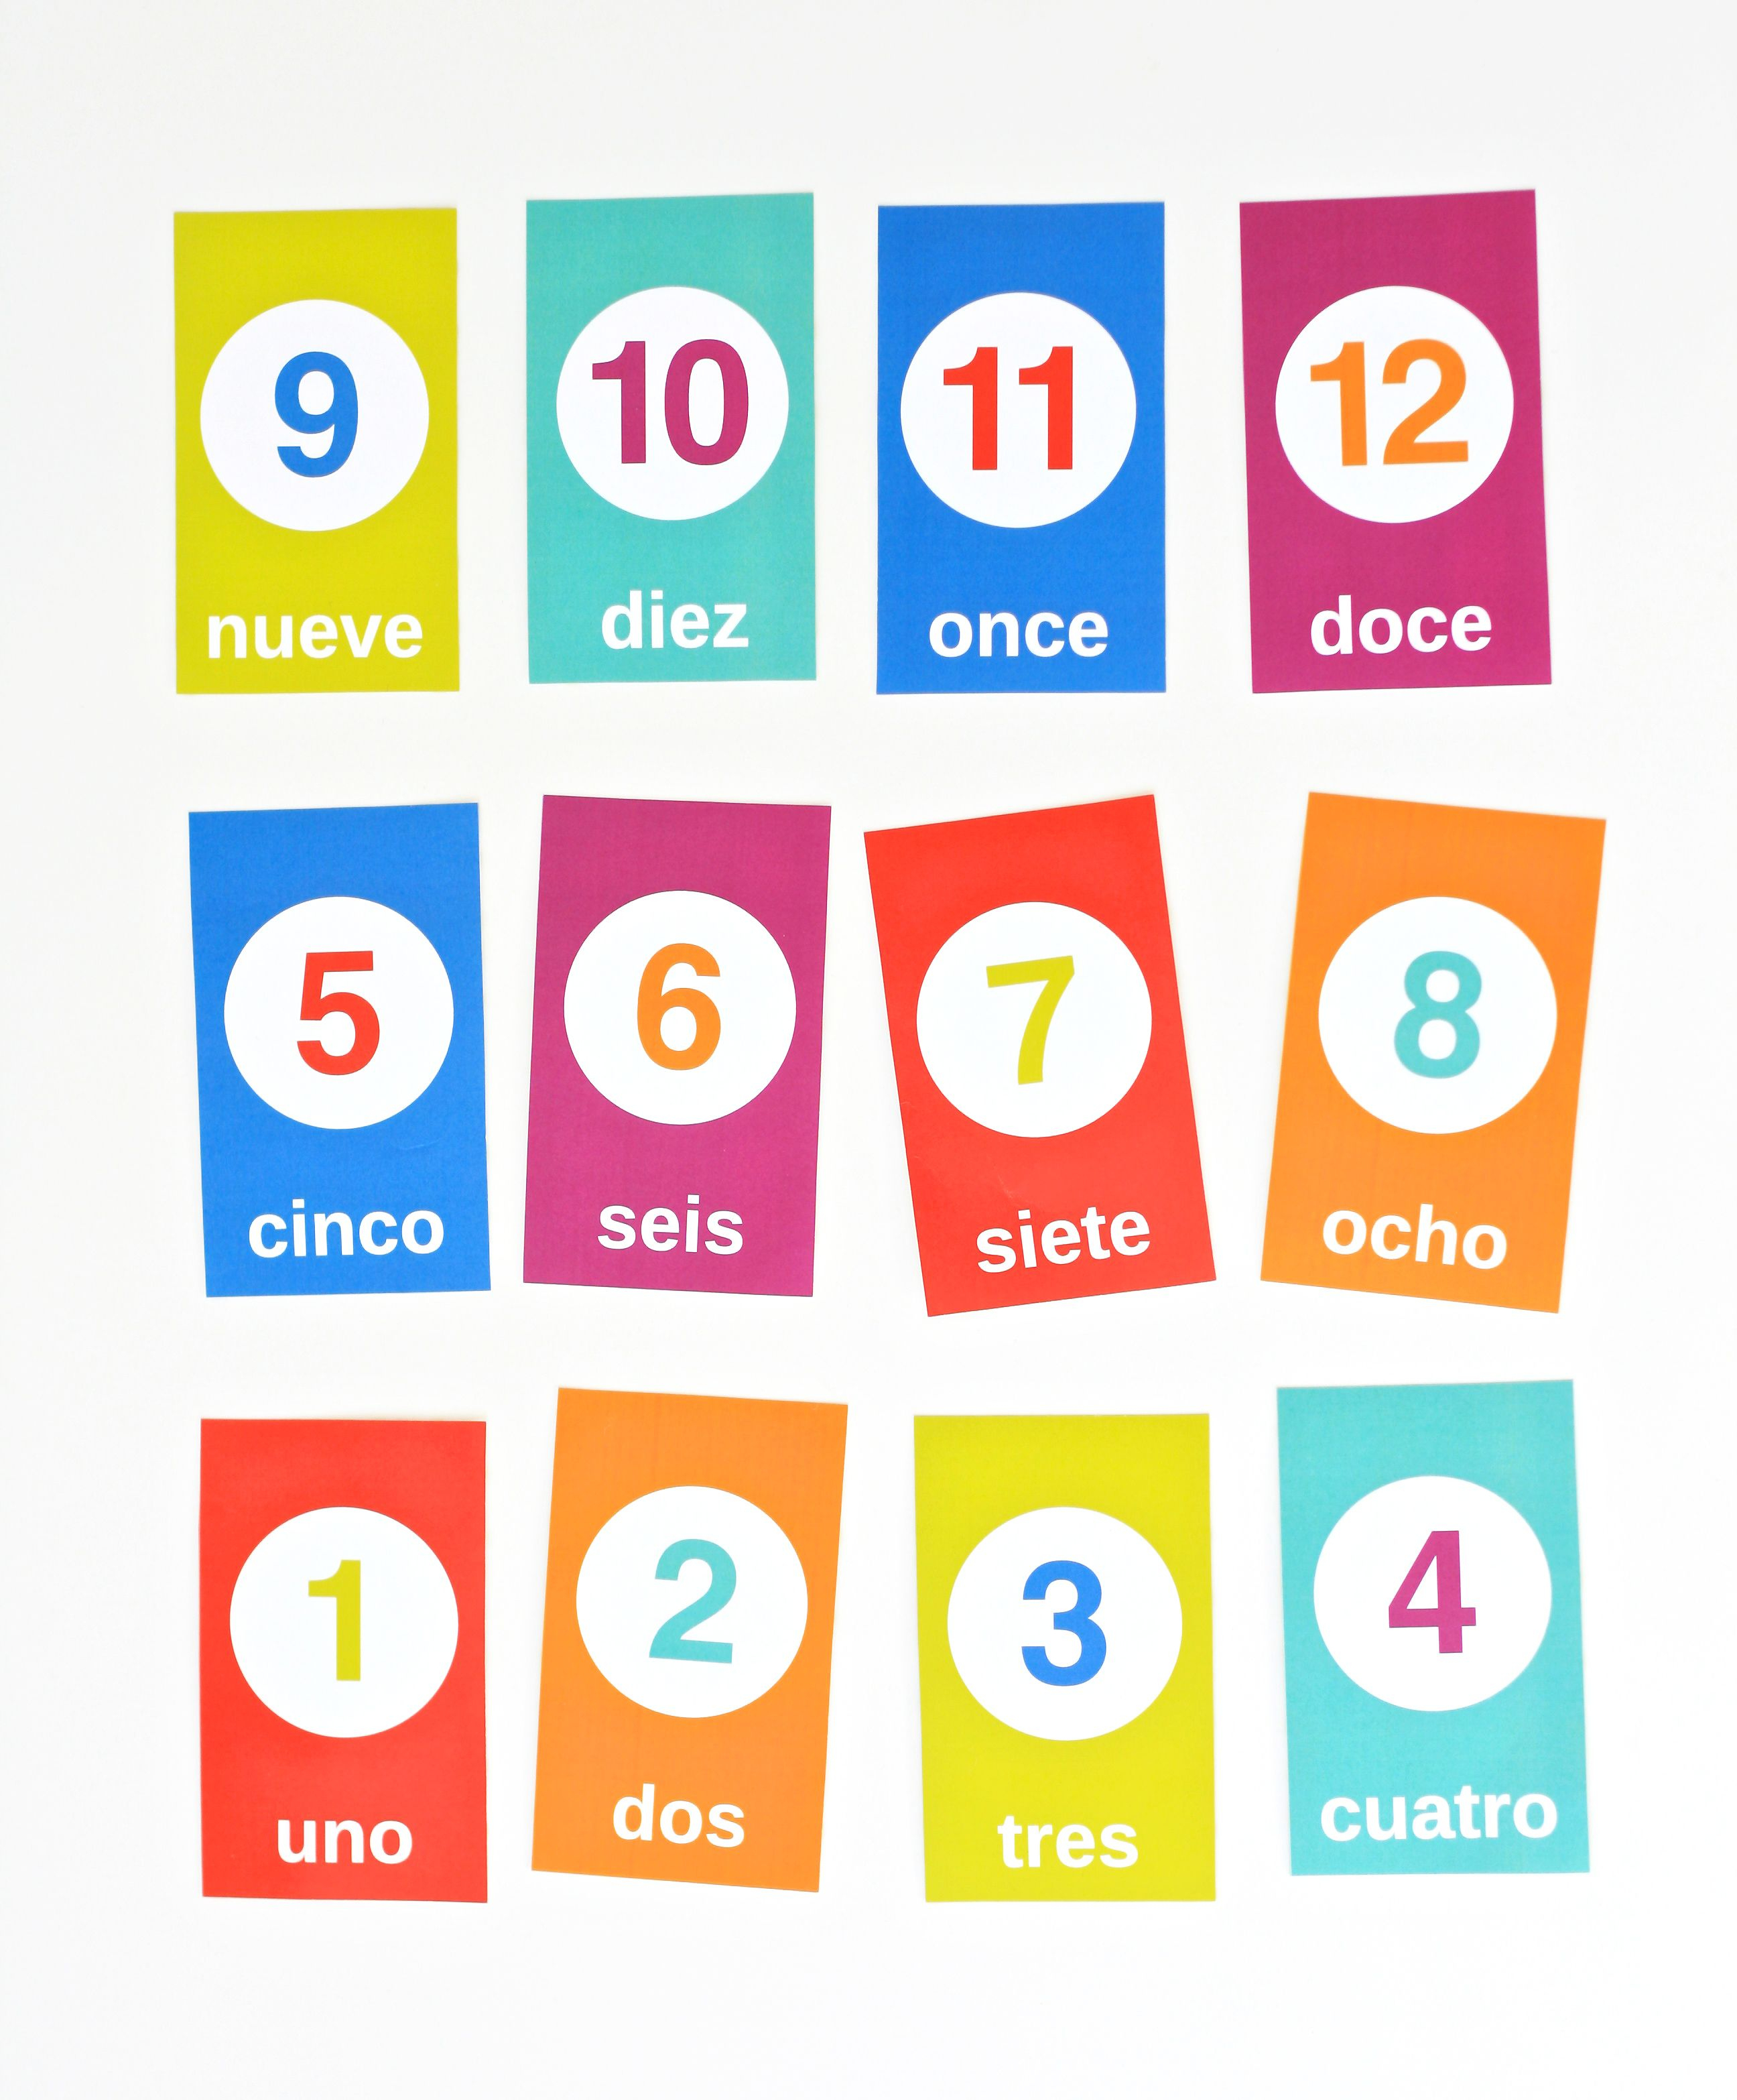 Free Flashcards For Counting In Spanish | Spanish Classroom - Free Printable Spanish Verb Flashcards